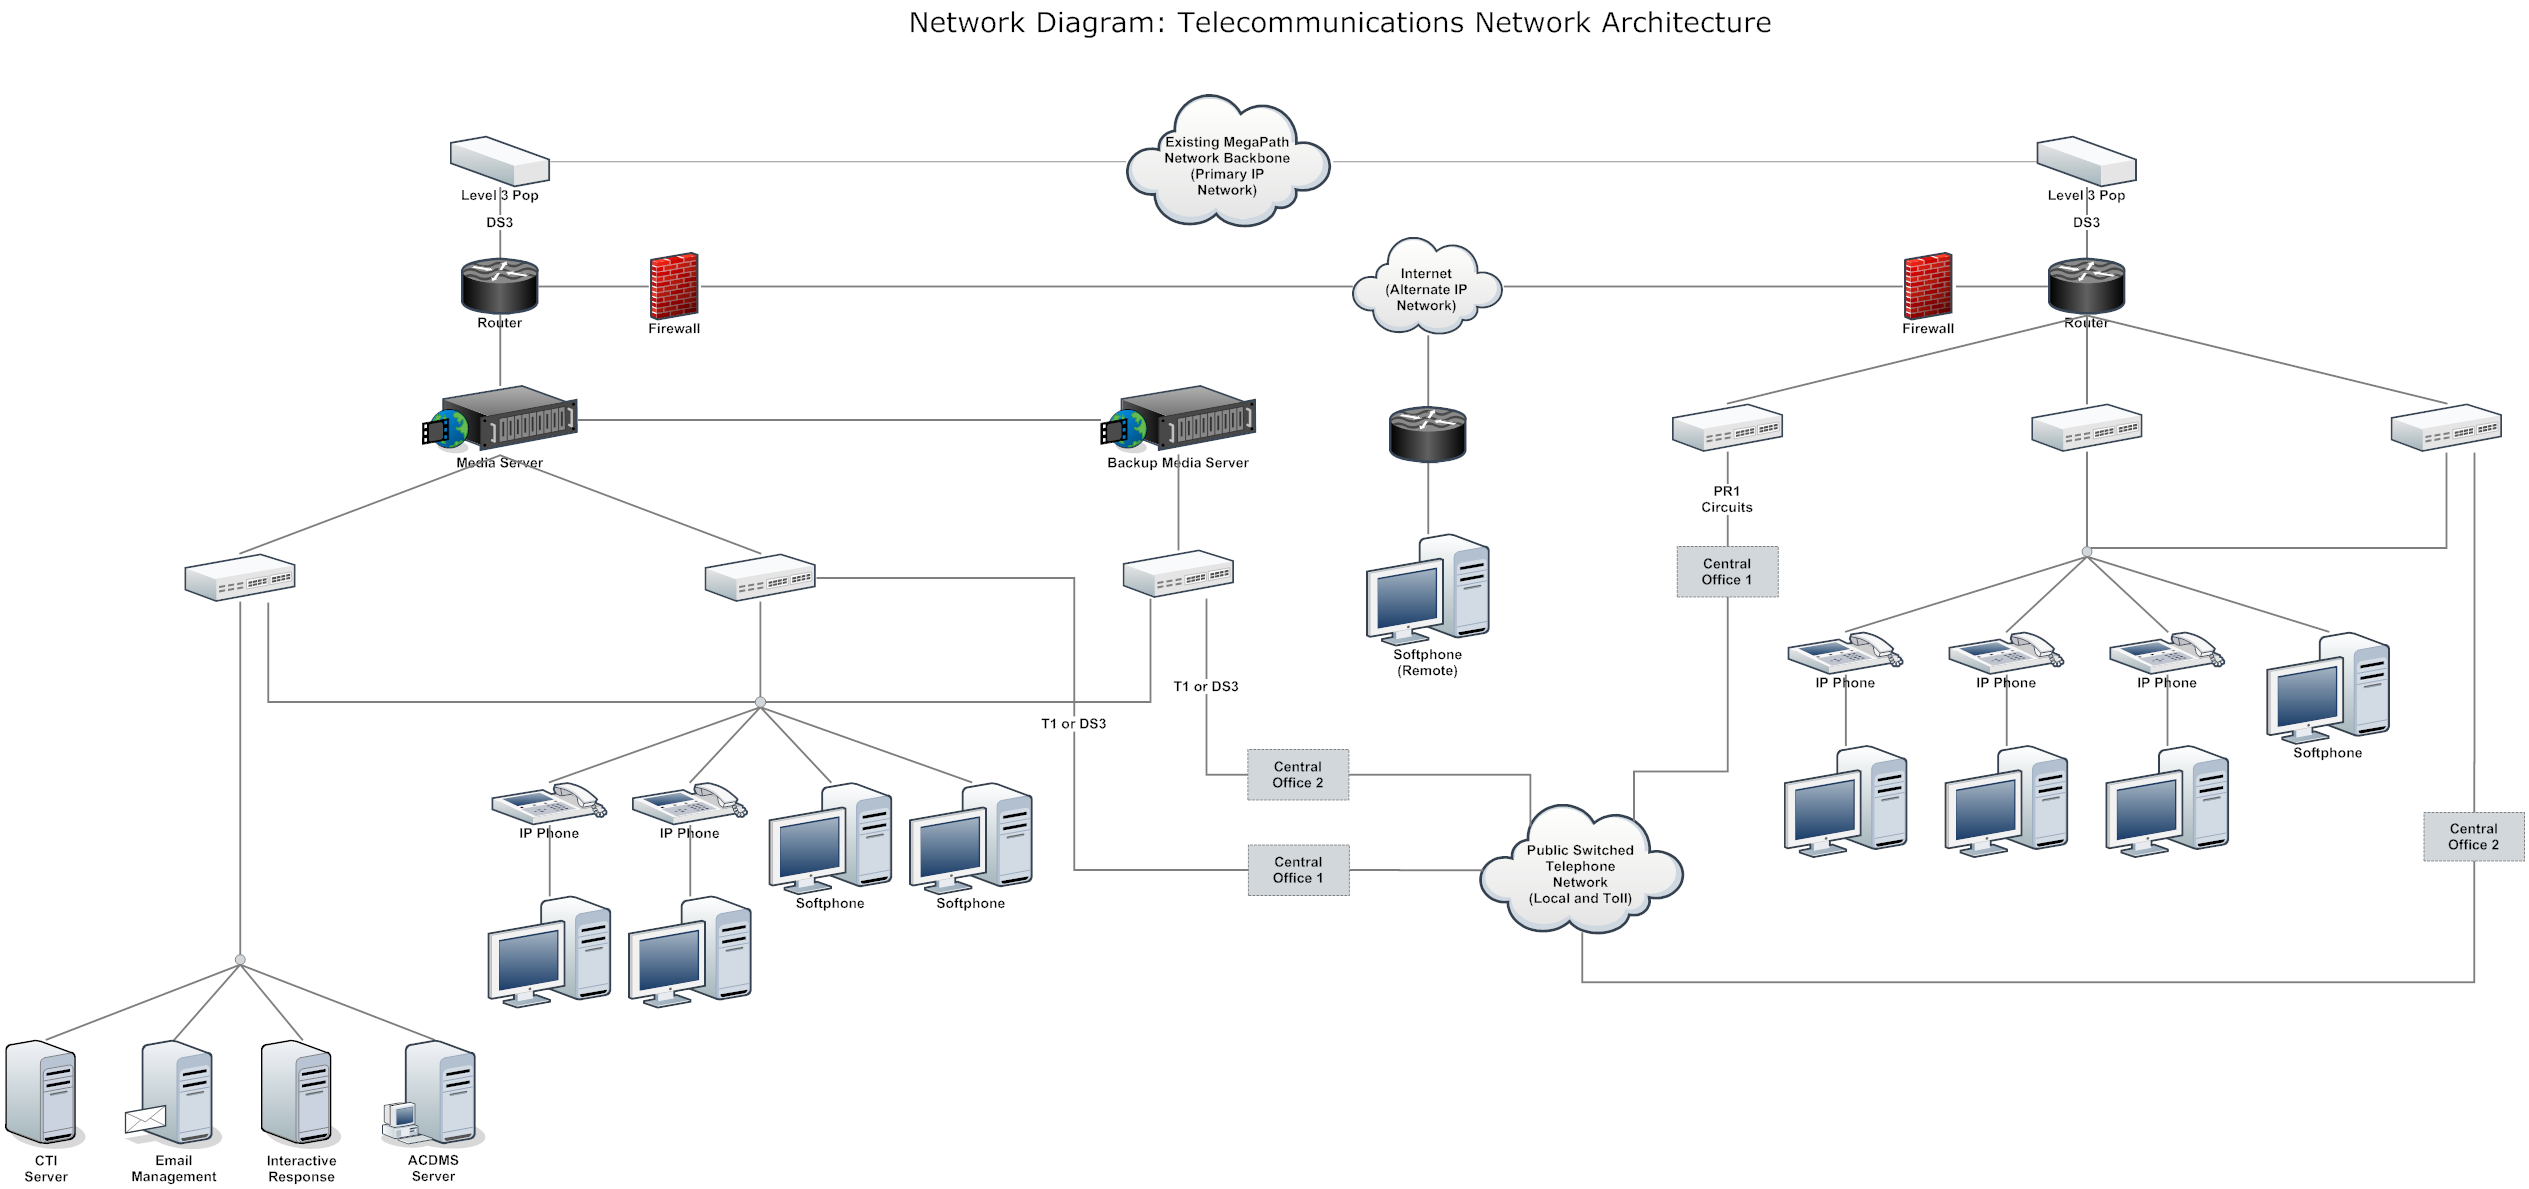 medium resolution of network diagram example telecommunnications network architecture network diagram example large multiprotocol network